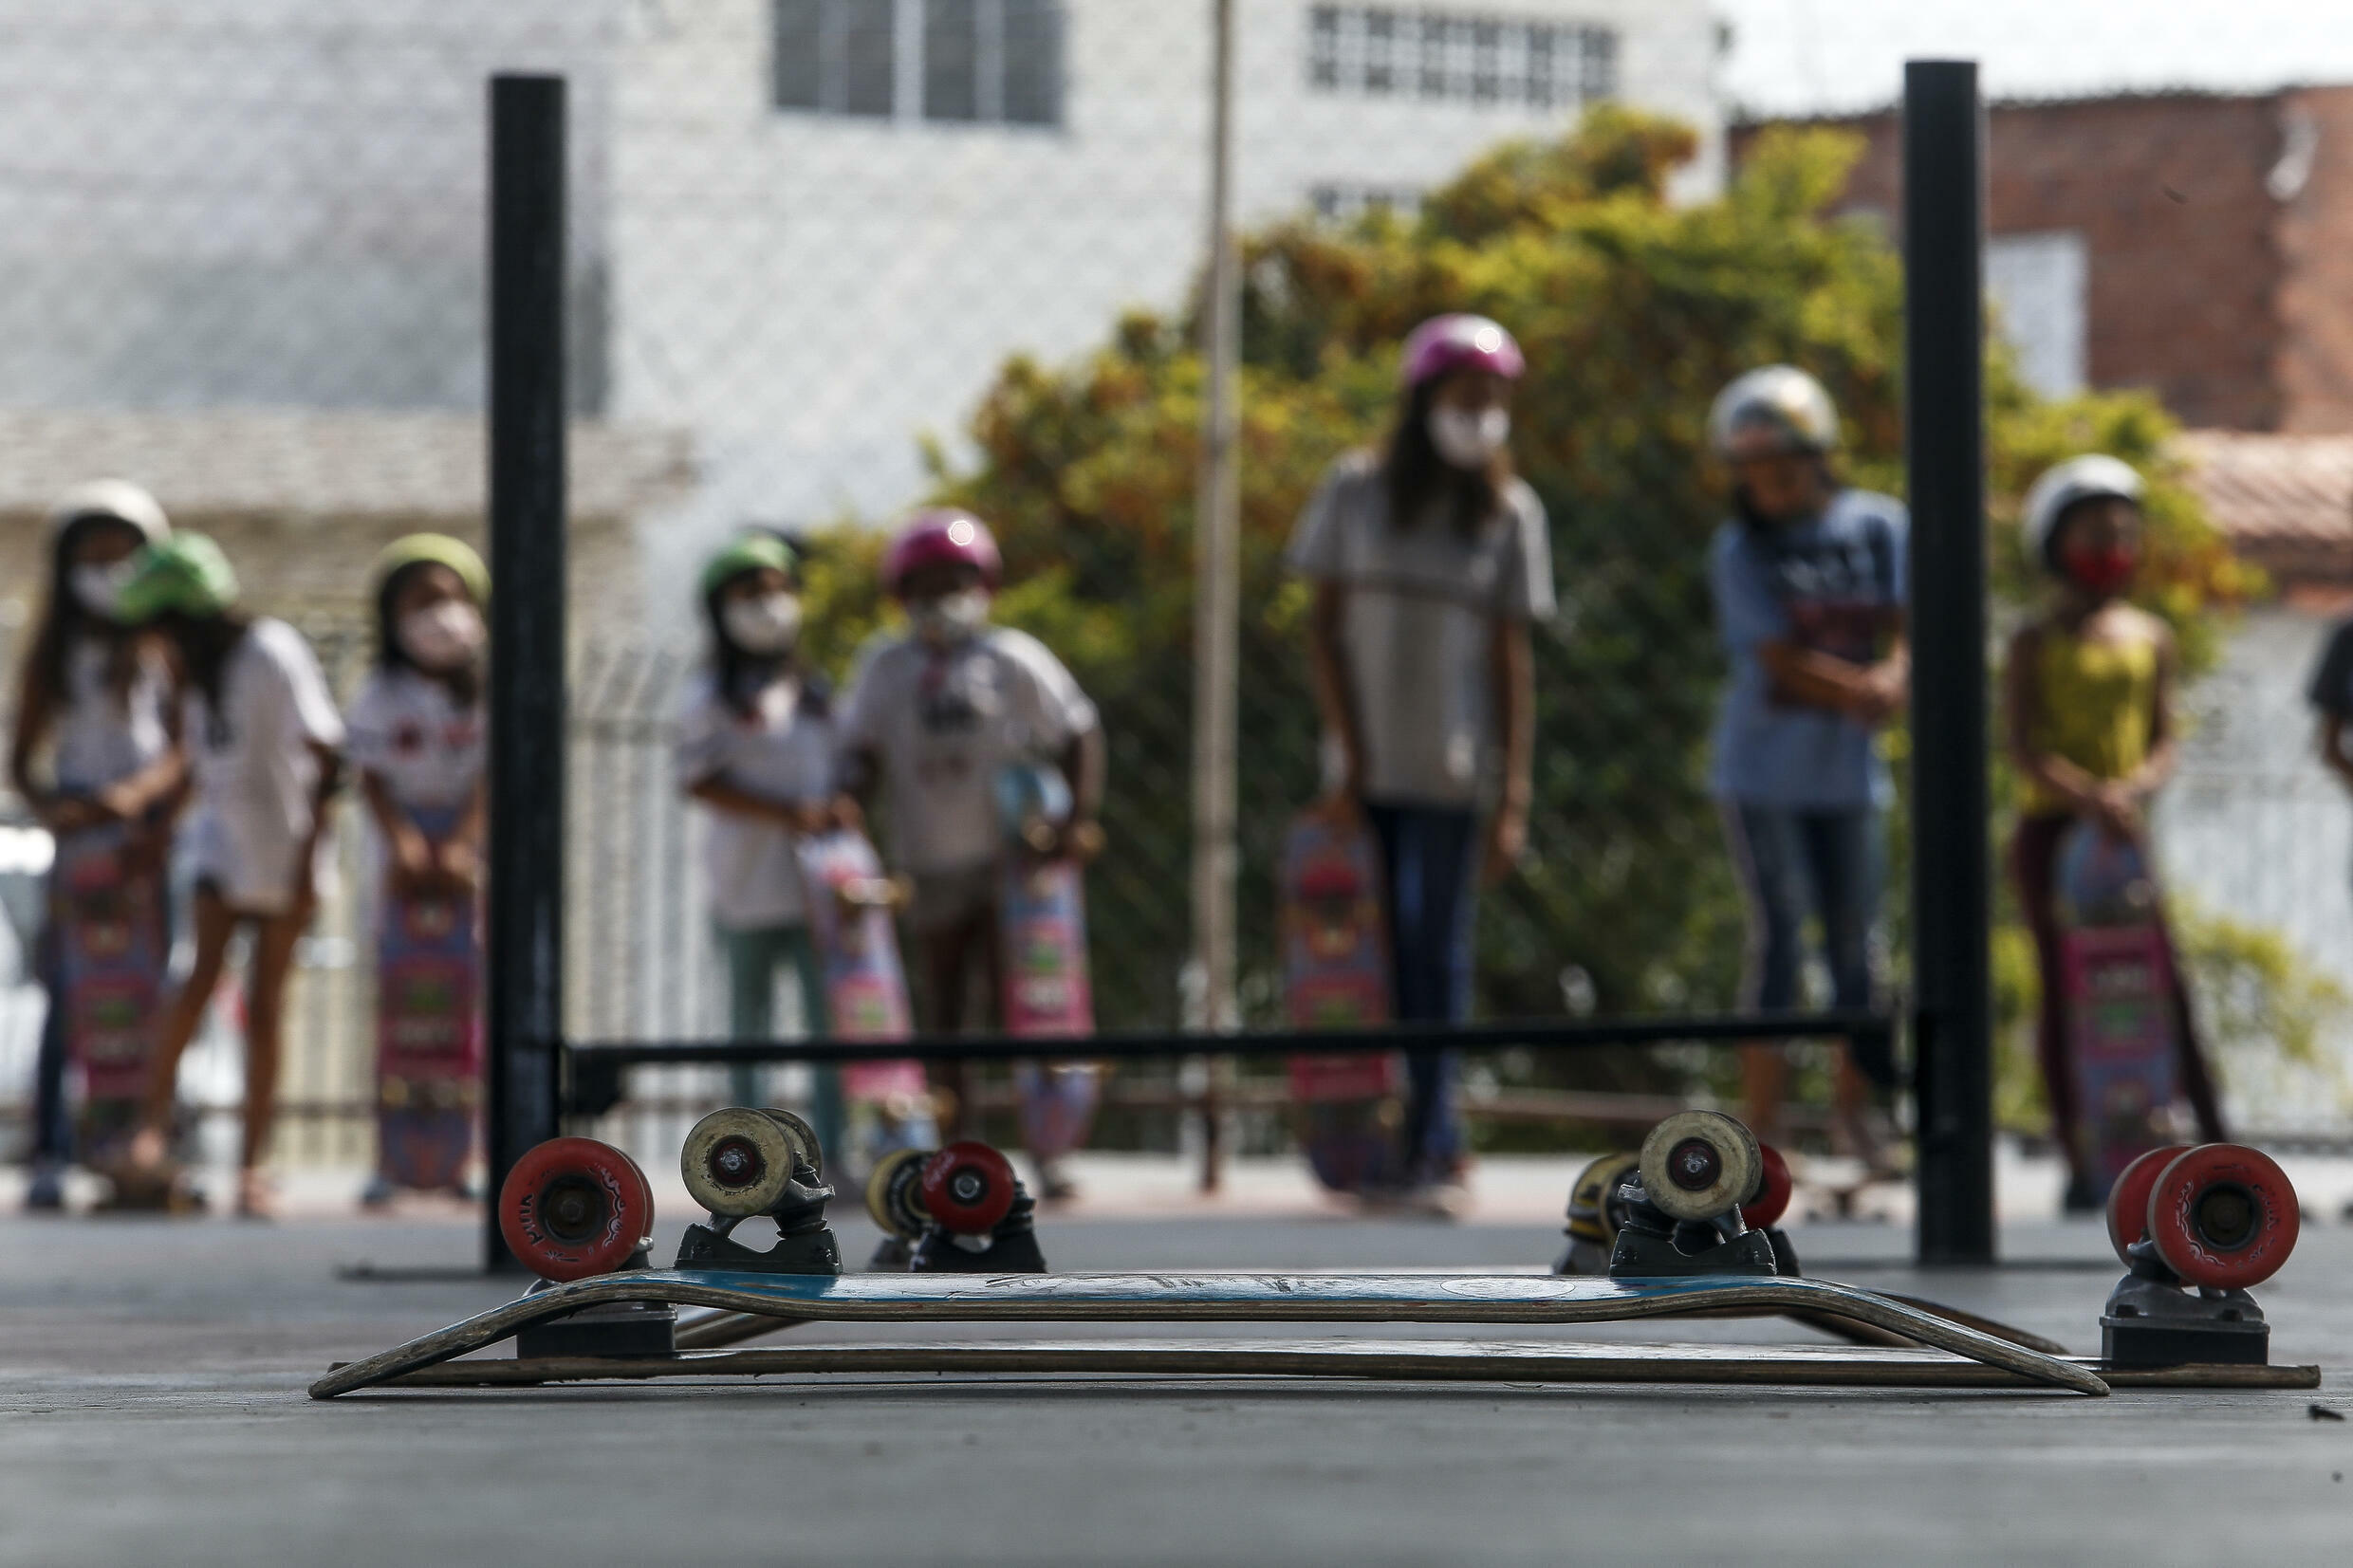 Young girls in Poa, a suburb of Sao Paulo, get ready to take their turn skateboarding